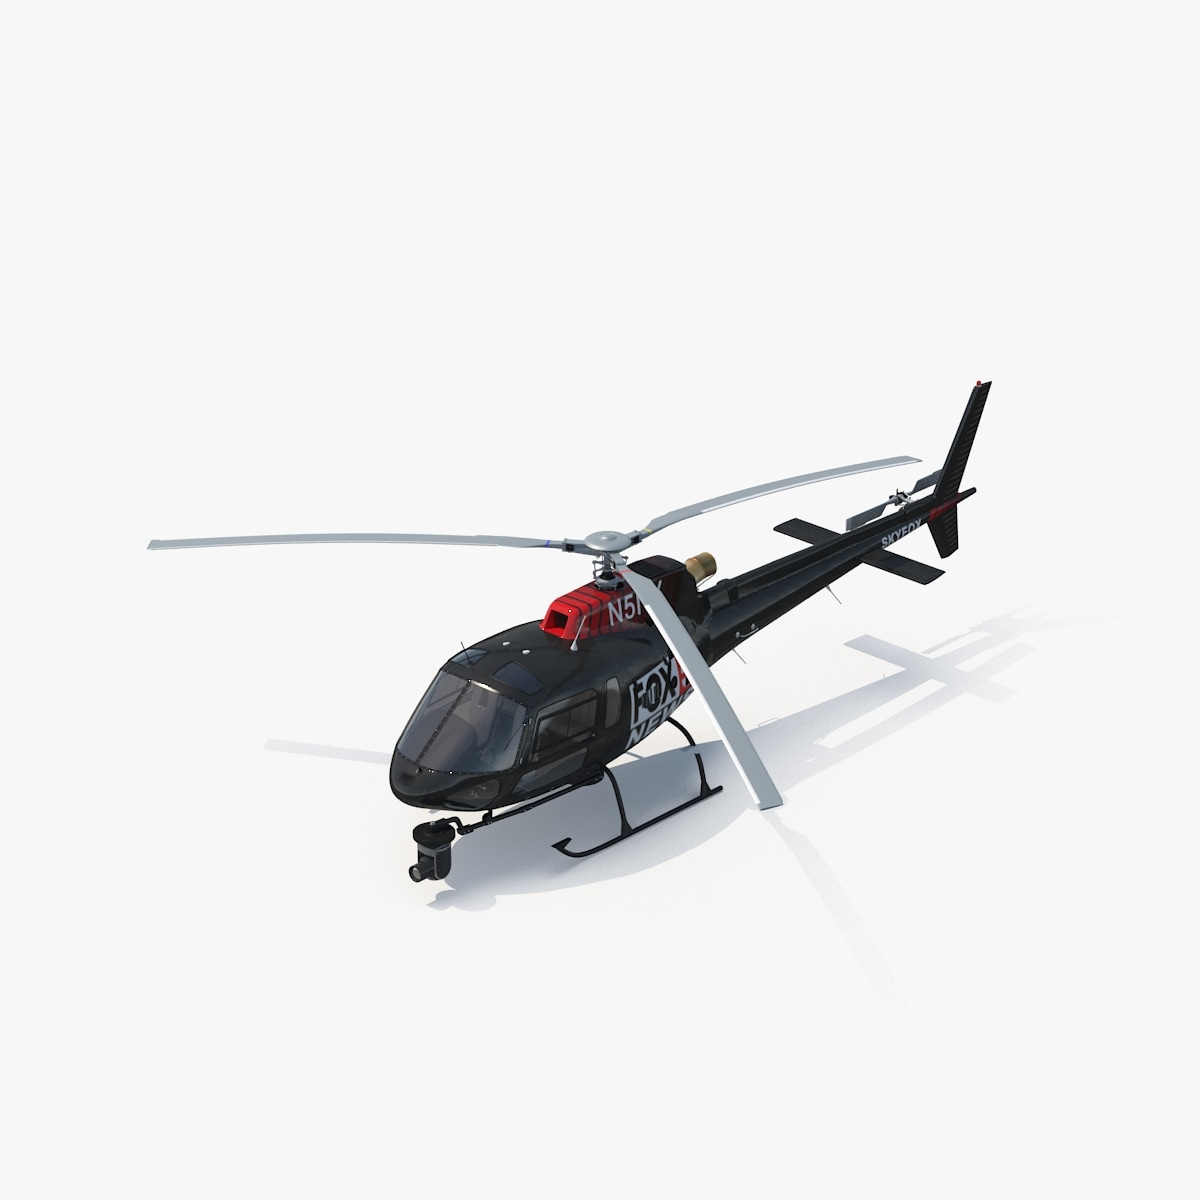 news_helicopter_SQRSignature_.jpg